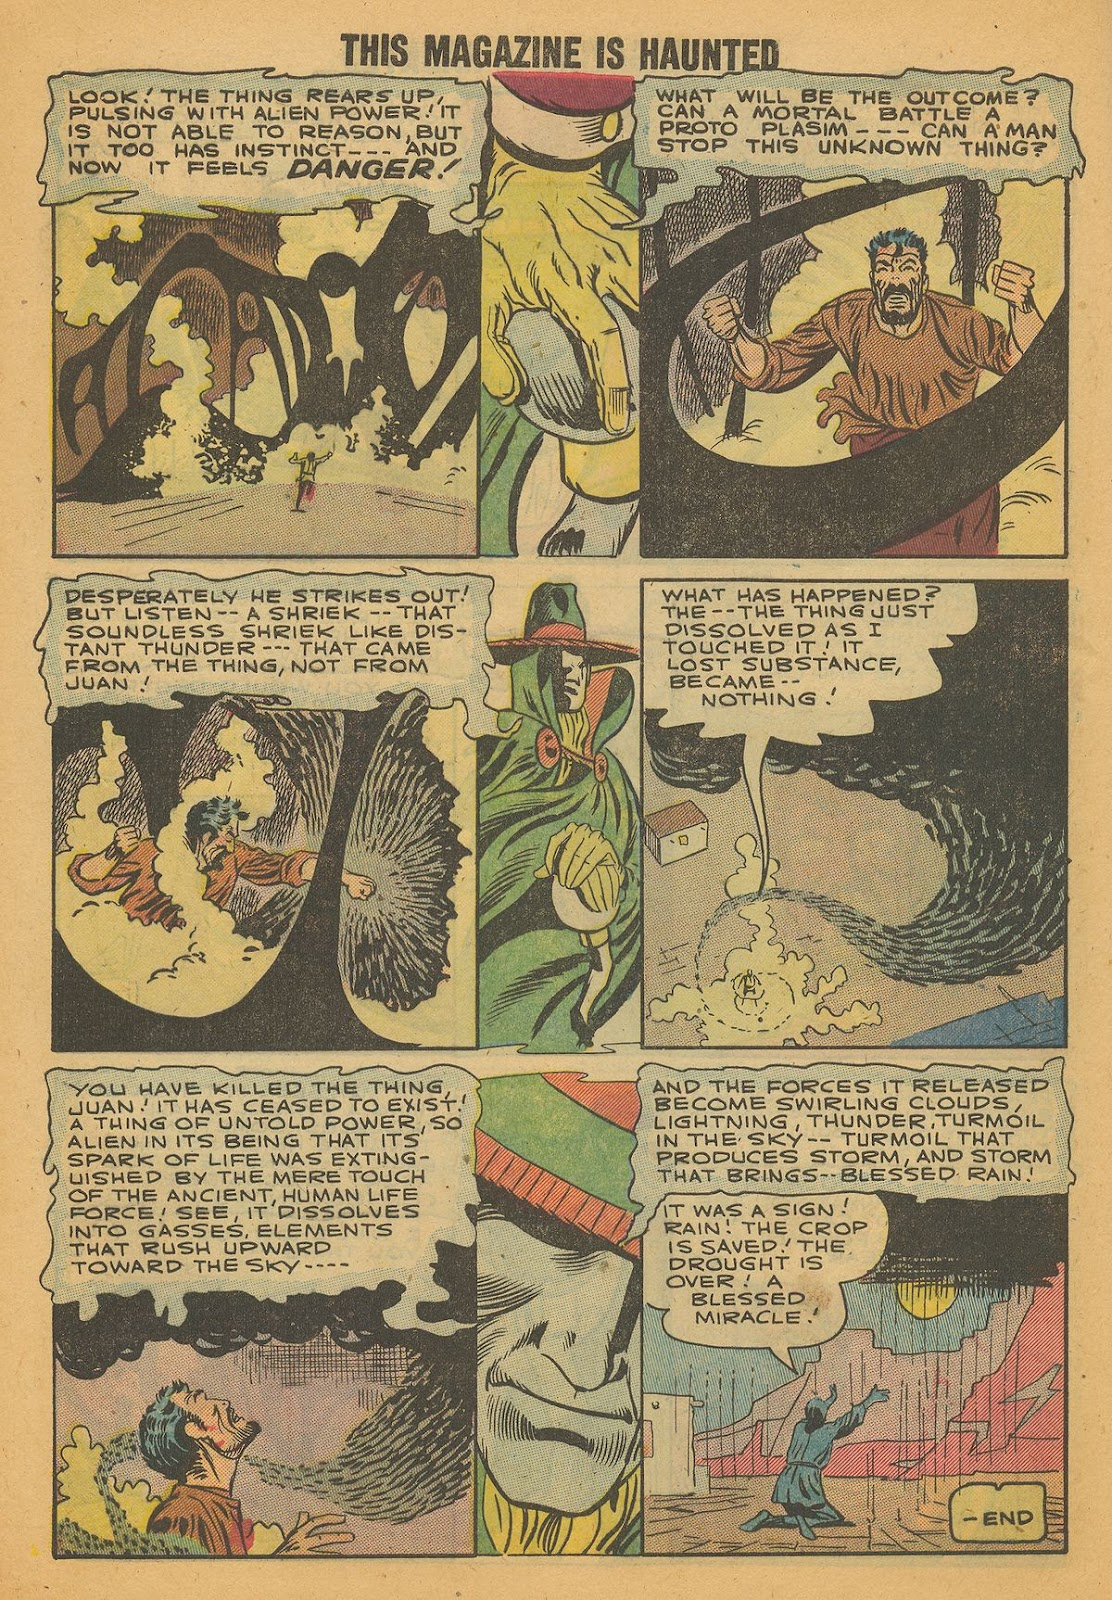 Read online This Magazine Is Haunted comic -  Issue #14 - 8